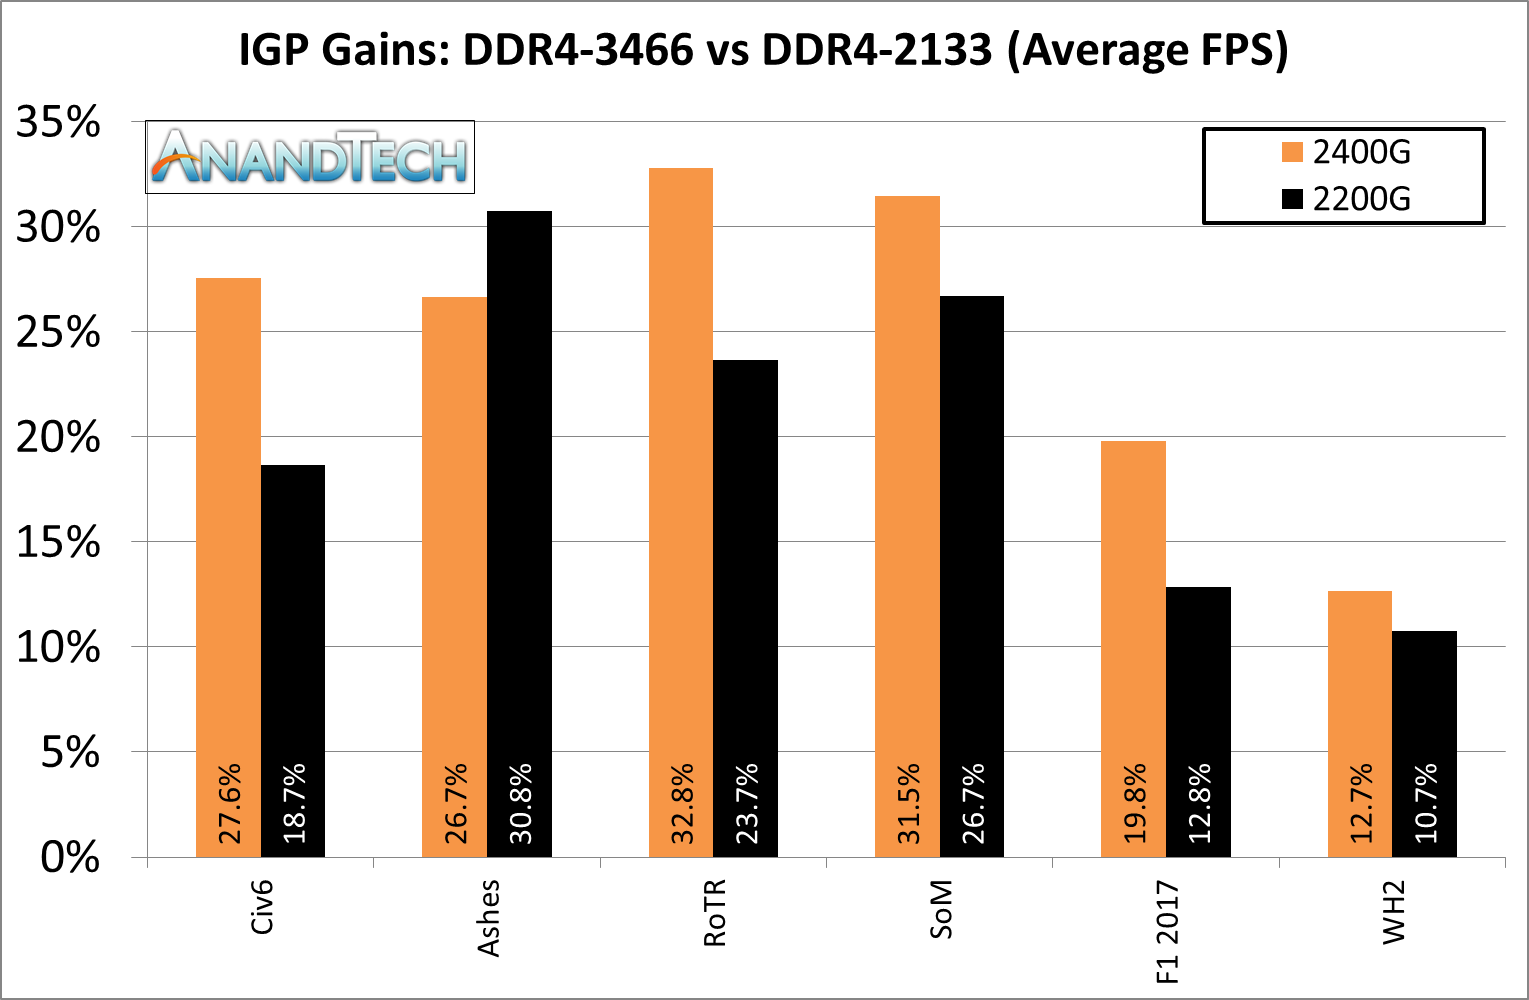 Conclusions on Ryzen APU DDR4 Scaling - Zen and Vega DDR4 Memory